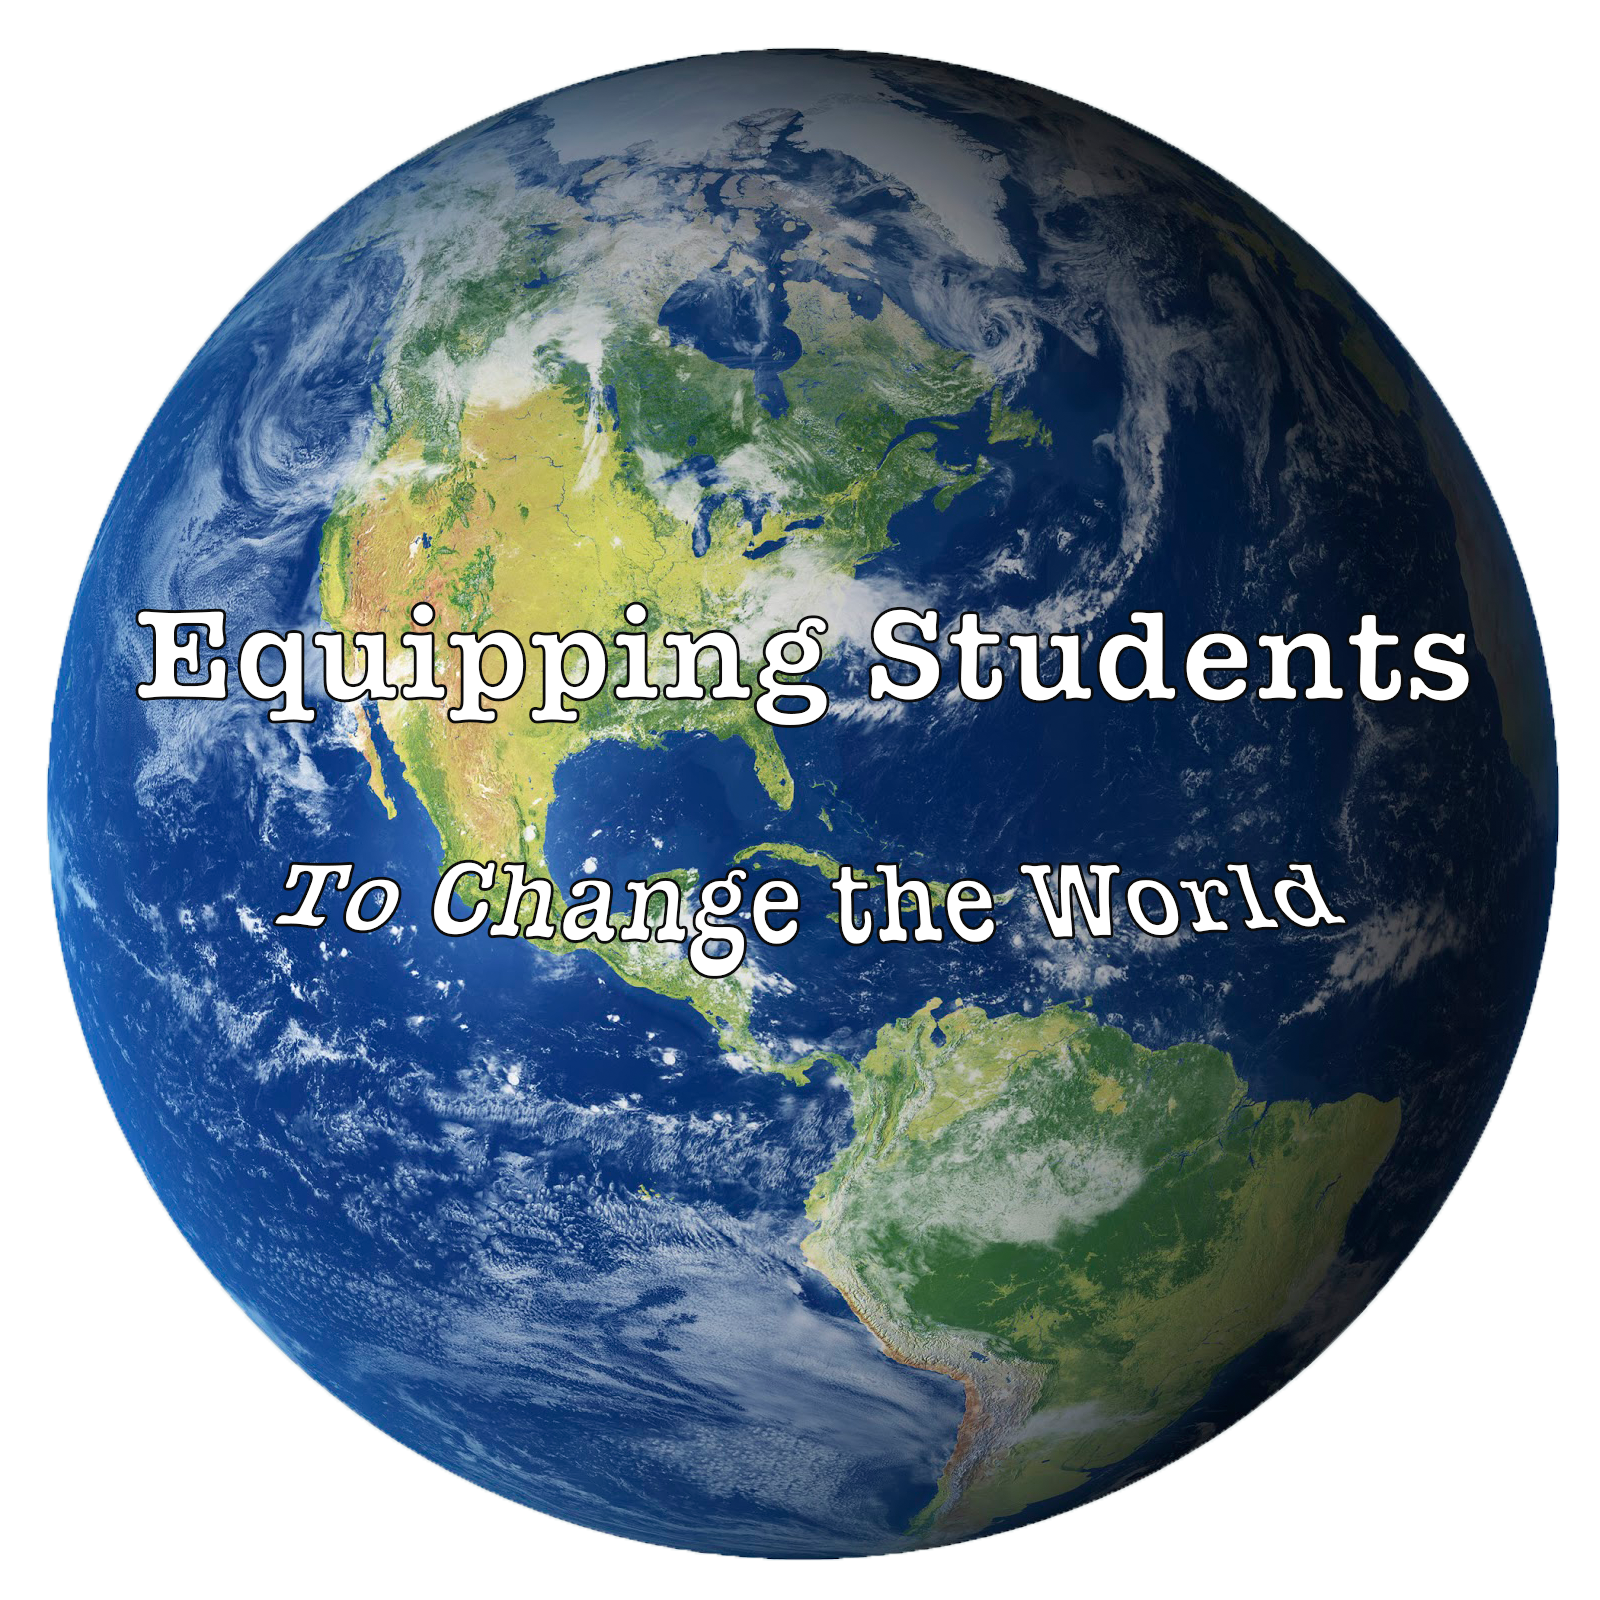 Equipping students logo